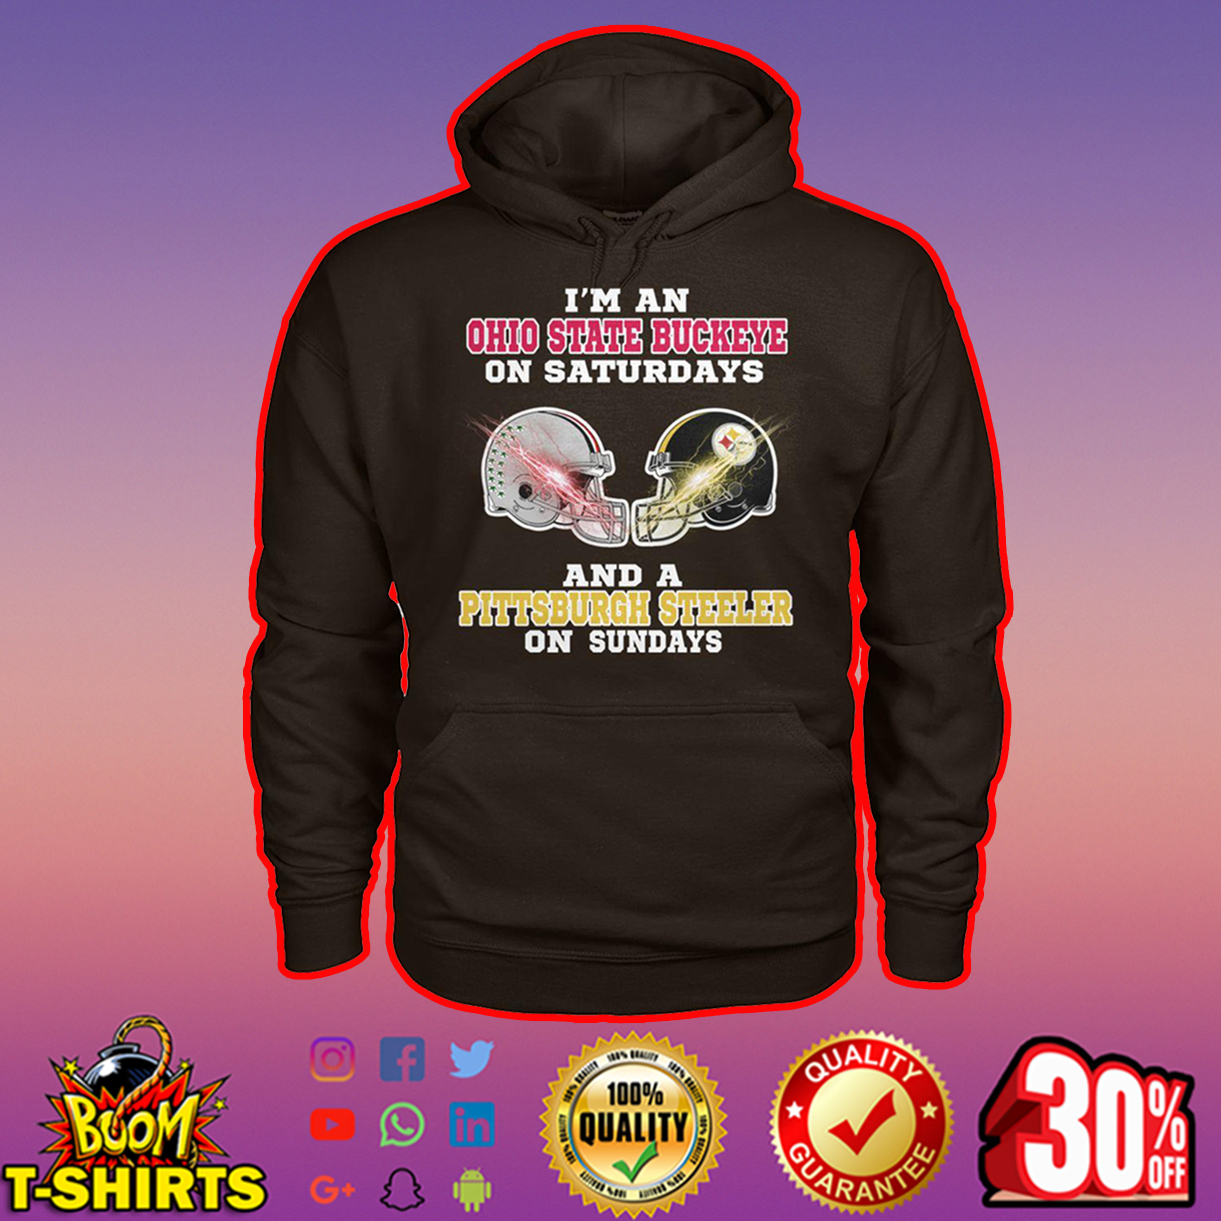 I'm an Ohio State Buckeye on saturdays and a Pittsburgh Steeler on sundays hoodie